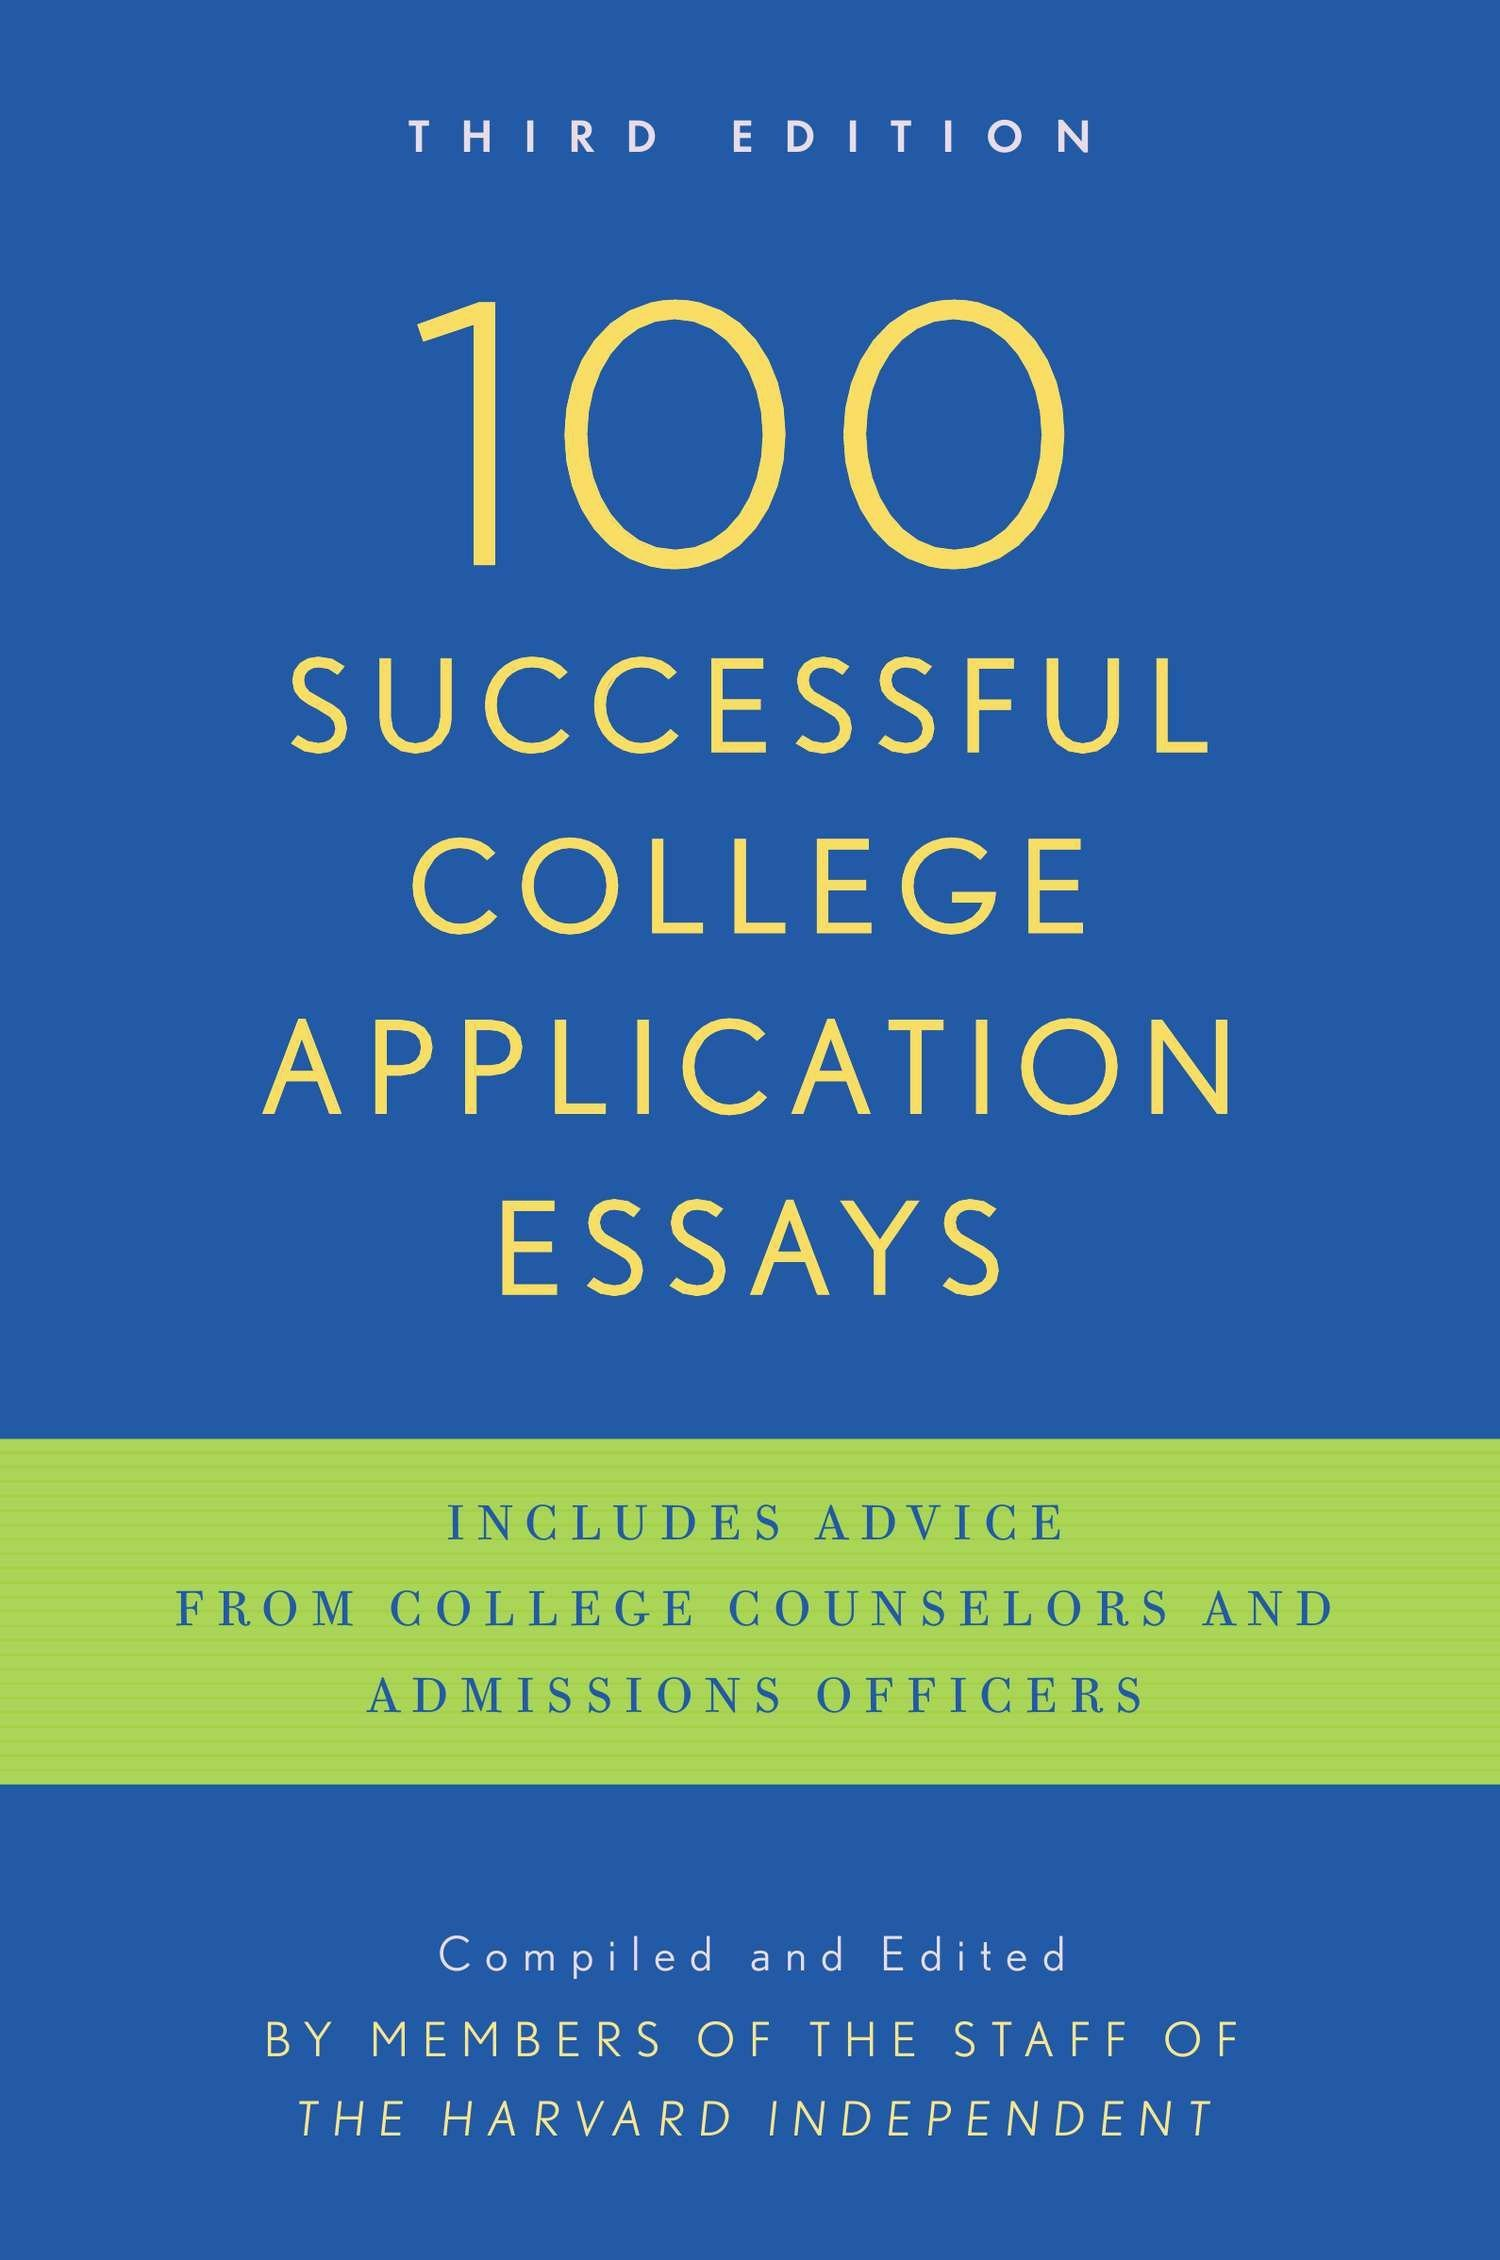 50 successful harvard application essays third edition business plan for infomercial